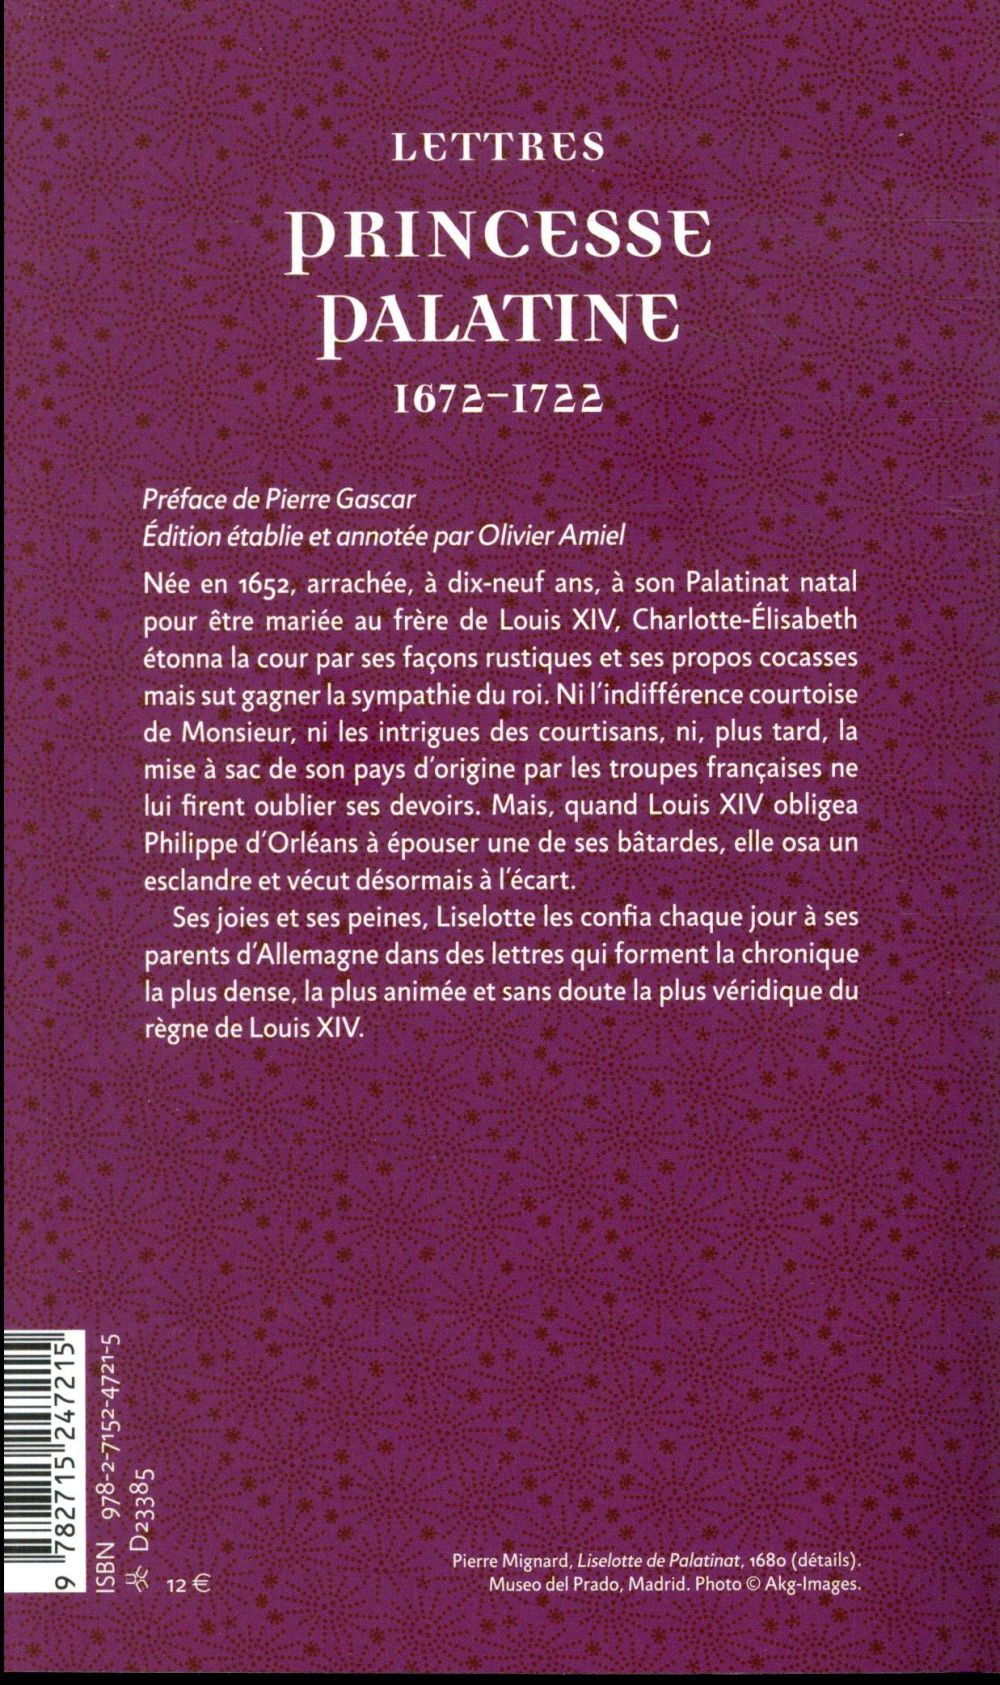 Lettres 1672-1722